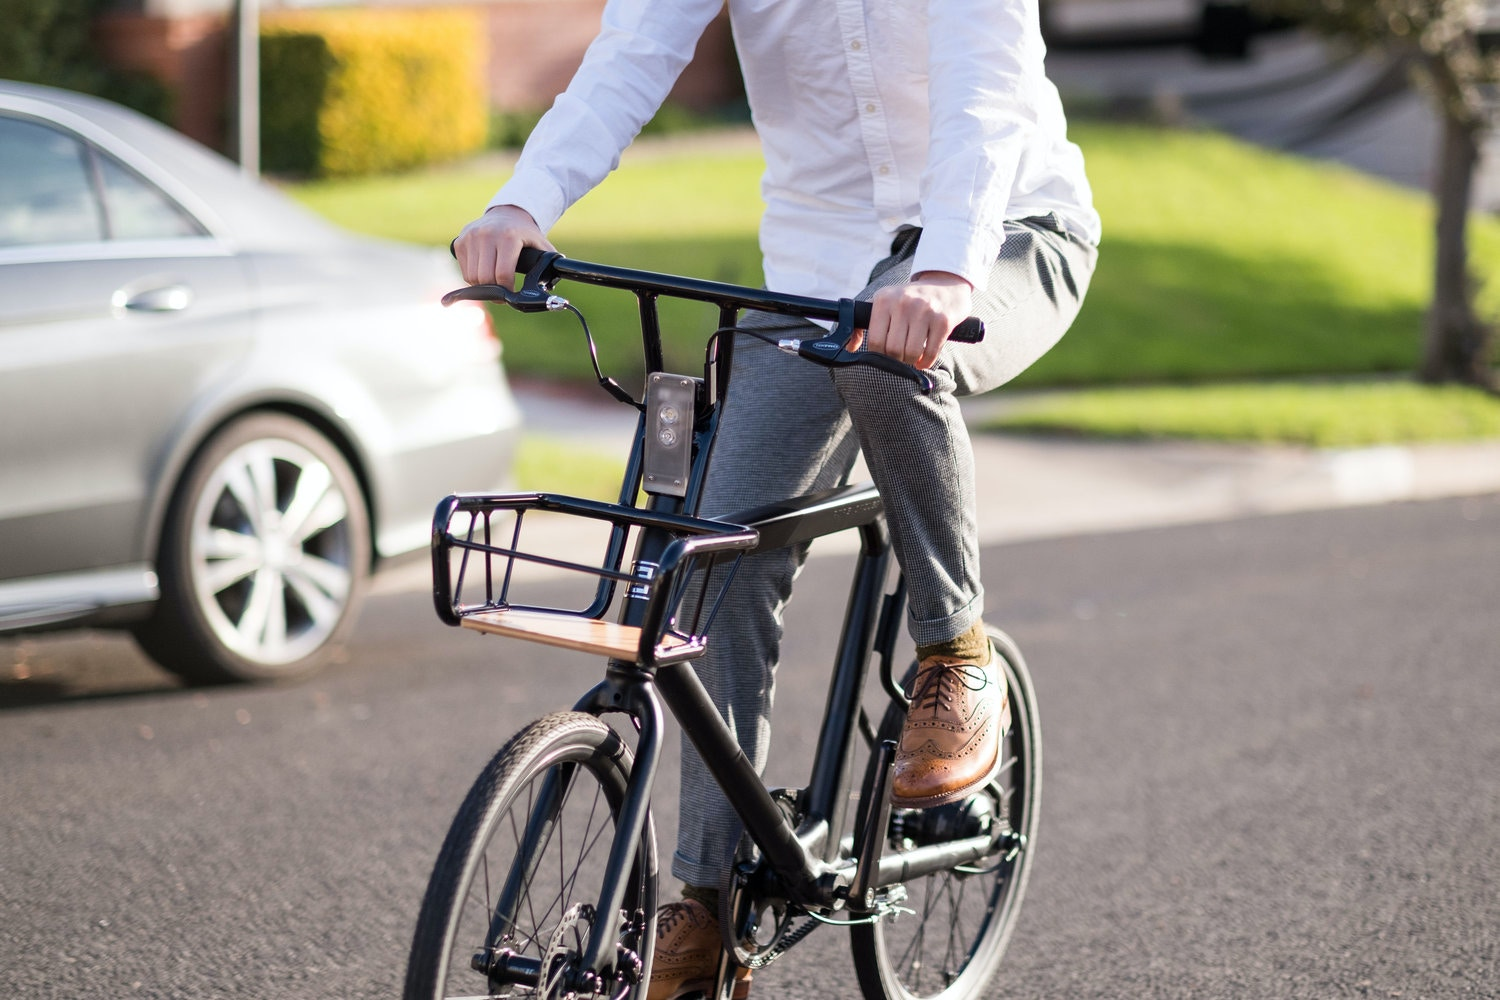 Pure Cycles Volta Electric Bike: First Impressions